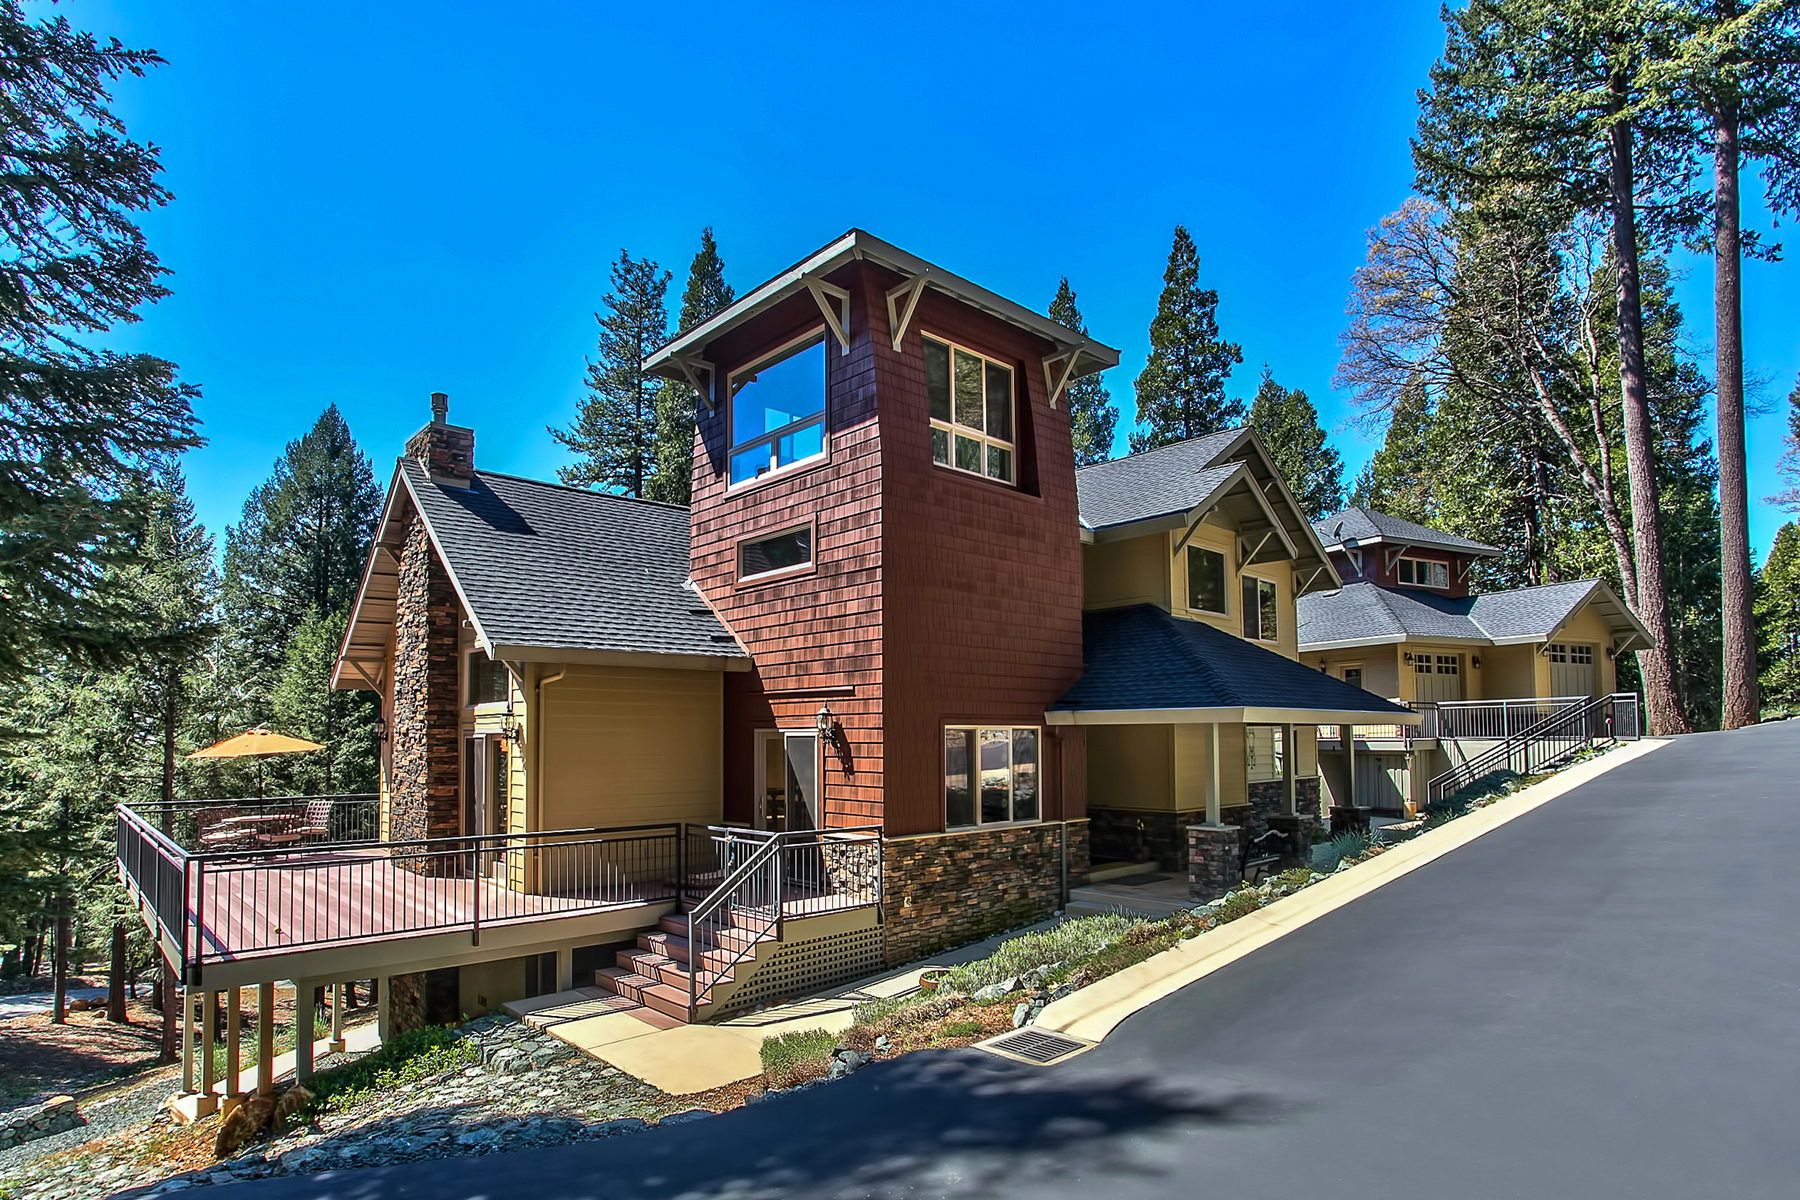 Single Family Home for Active at 11627 Caroline Lane 11627 Caroline Lane Nevada City, California 95959 United States